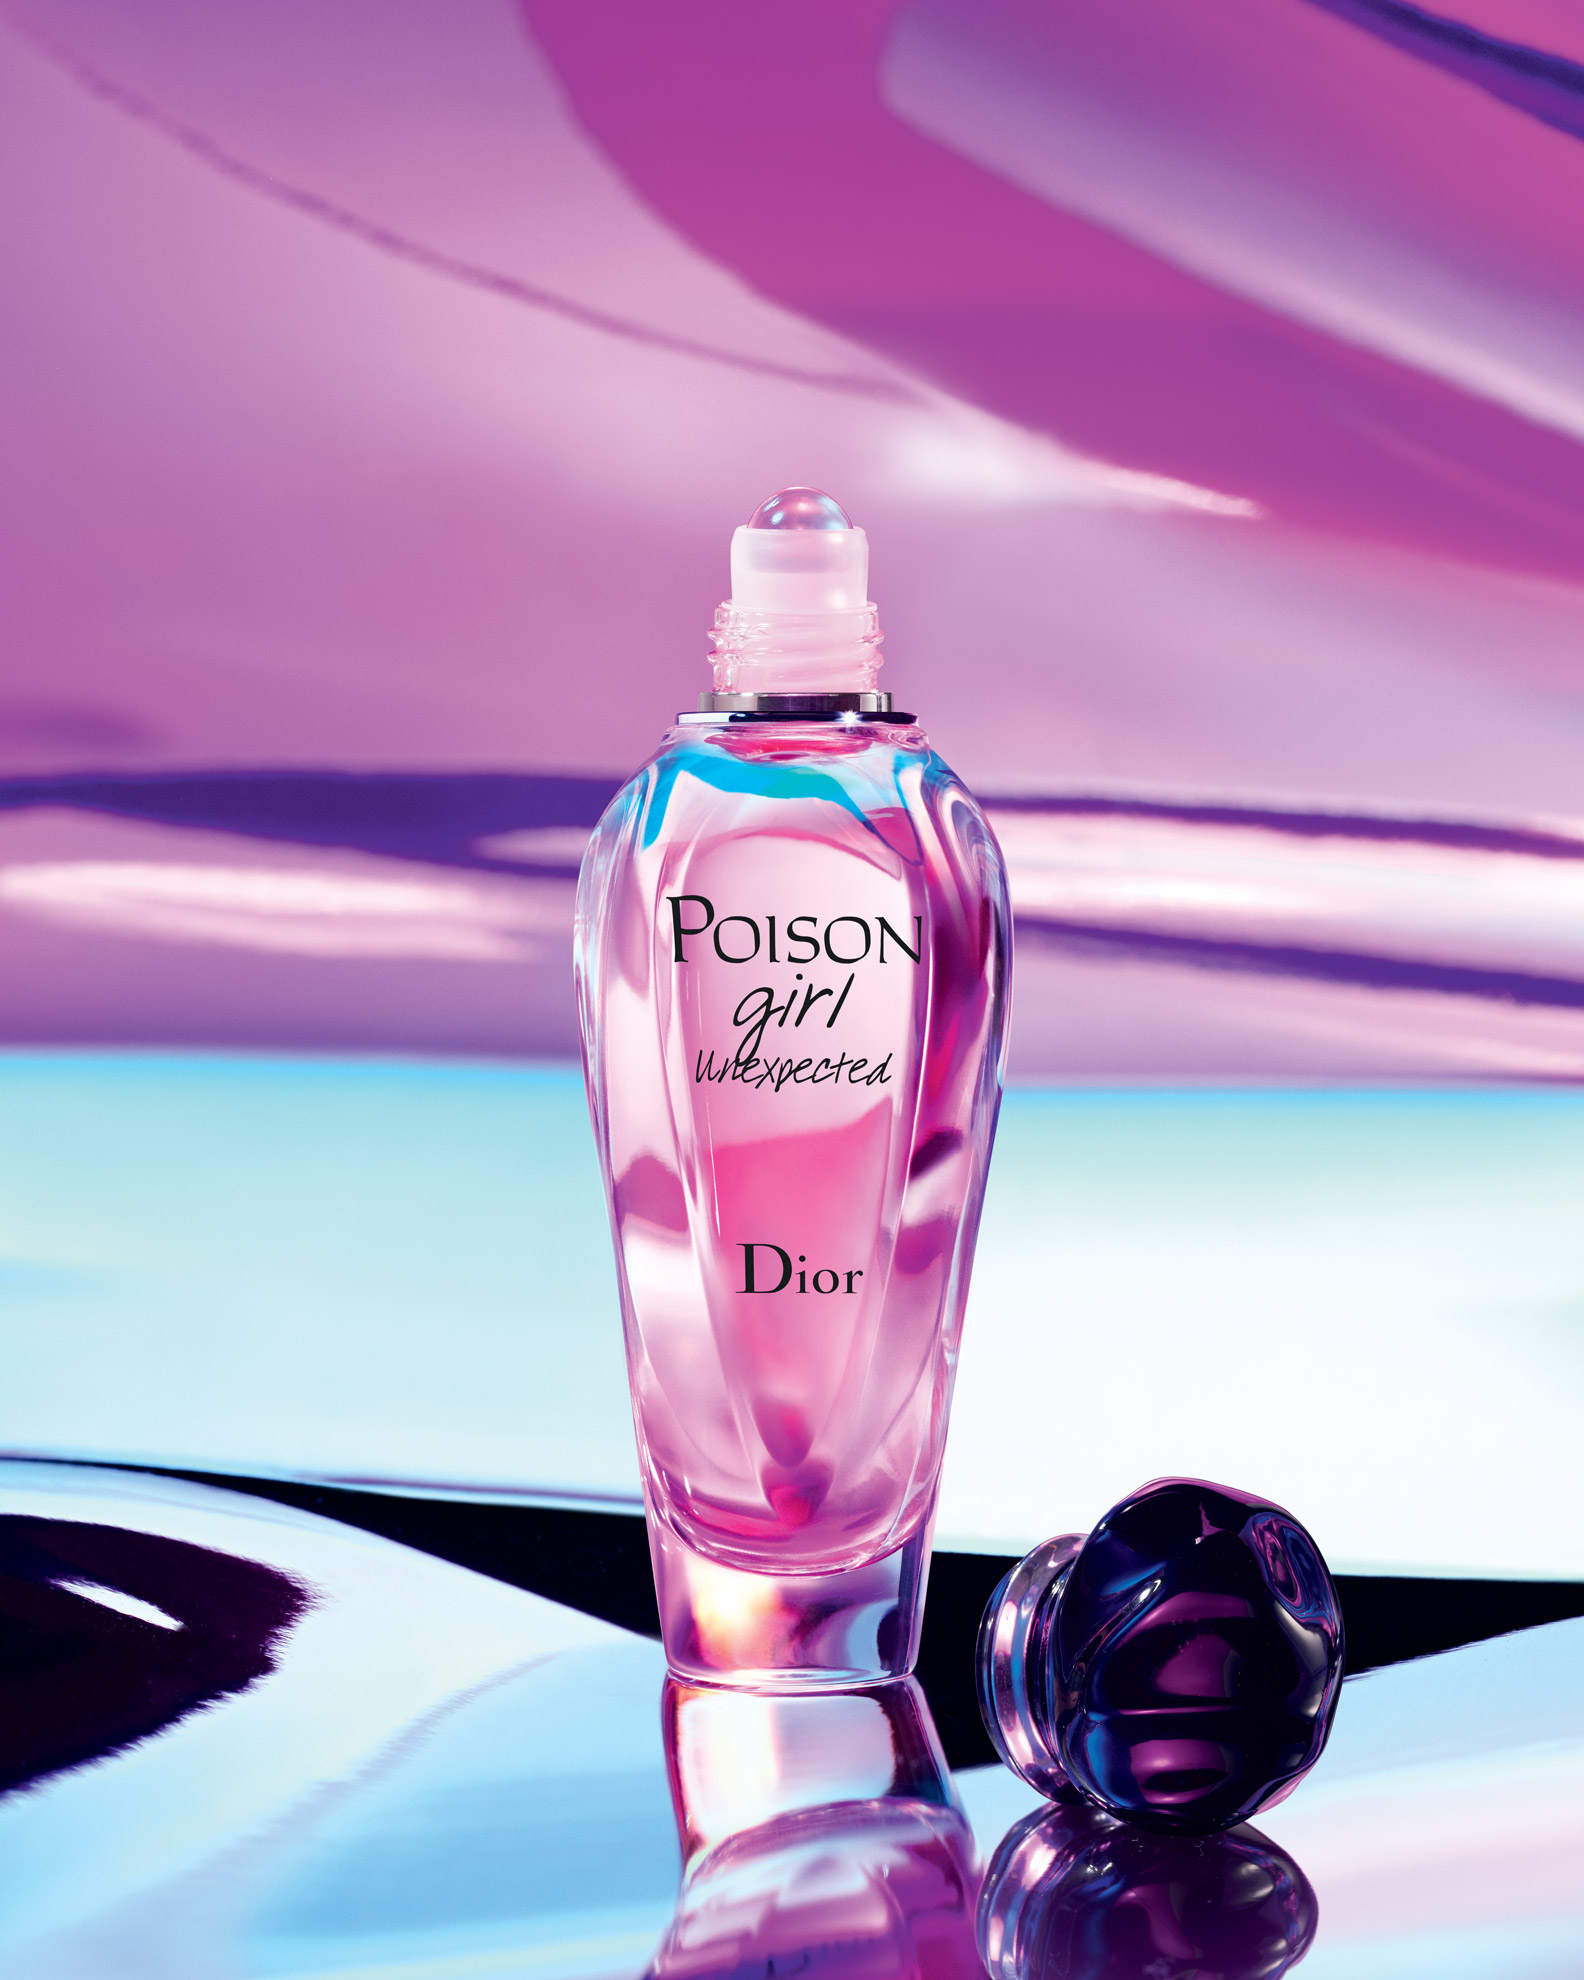 Dior Poison Girl Roller Pearl Flacons As A Seductive Perfume Weapon